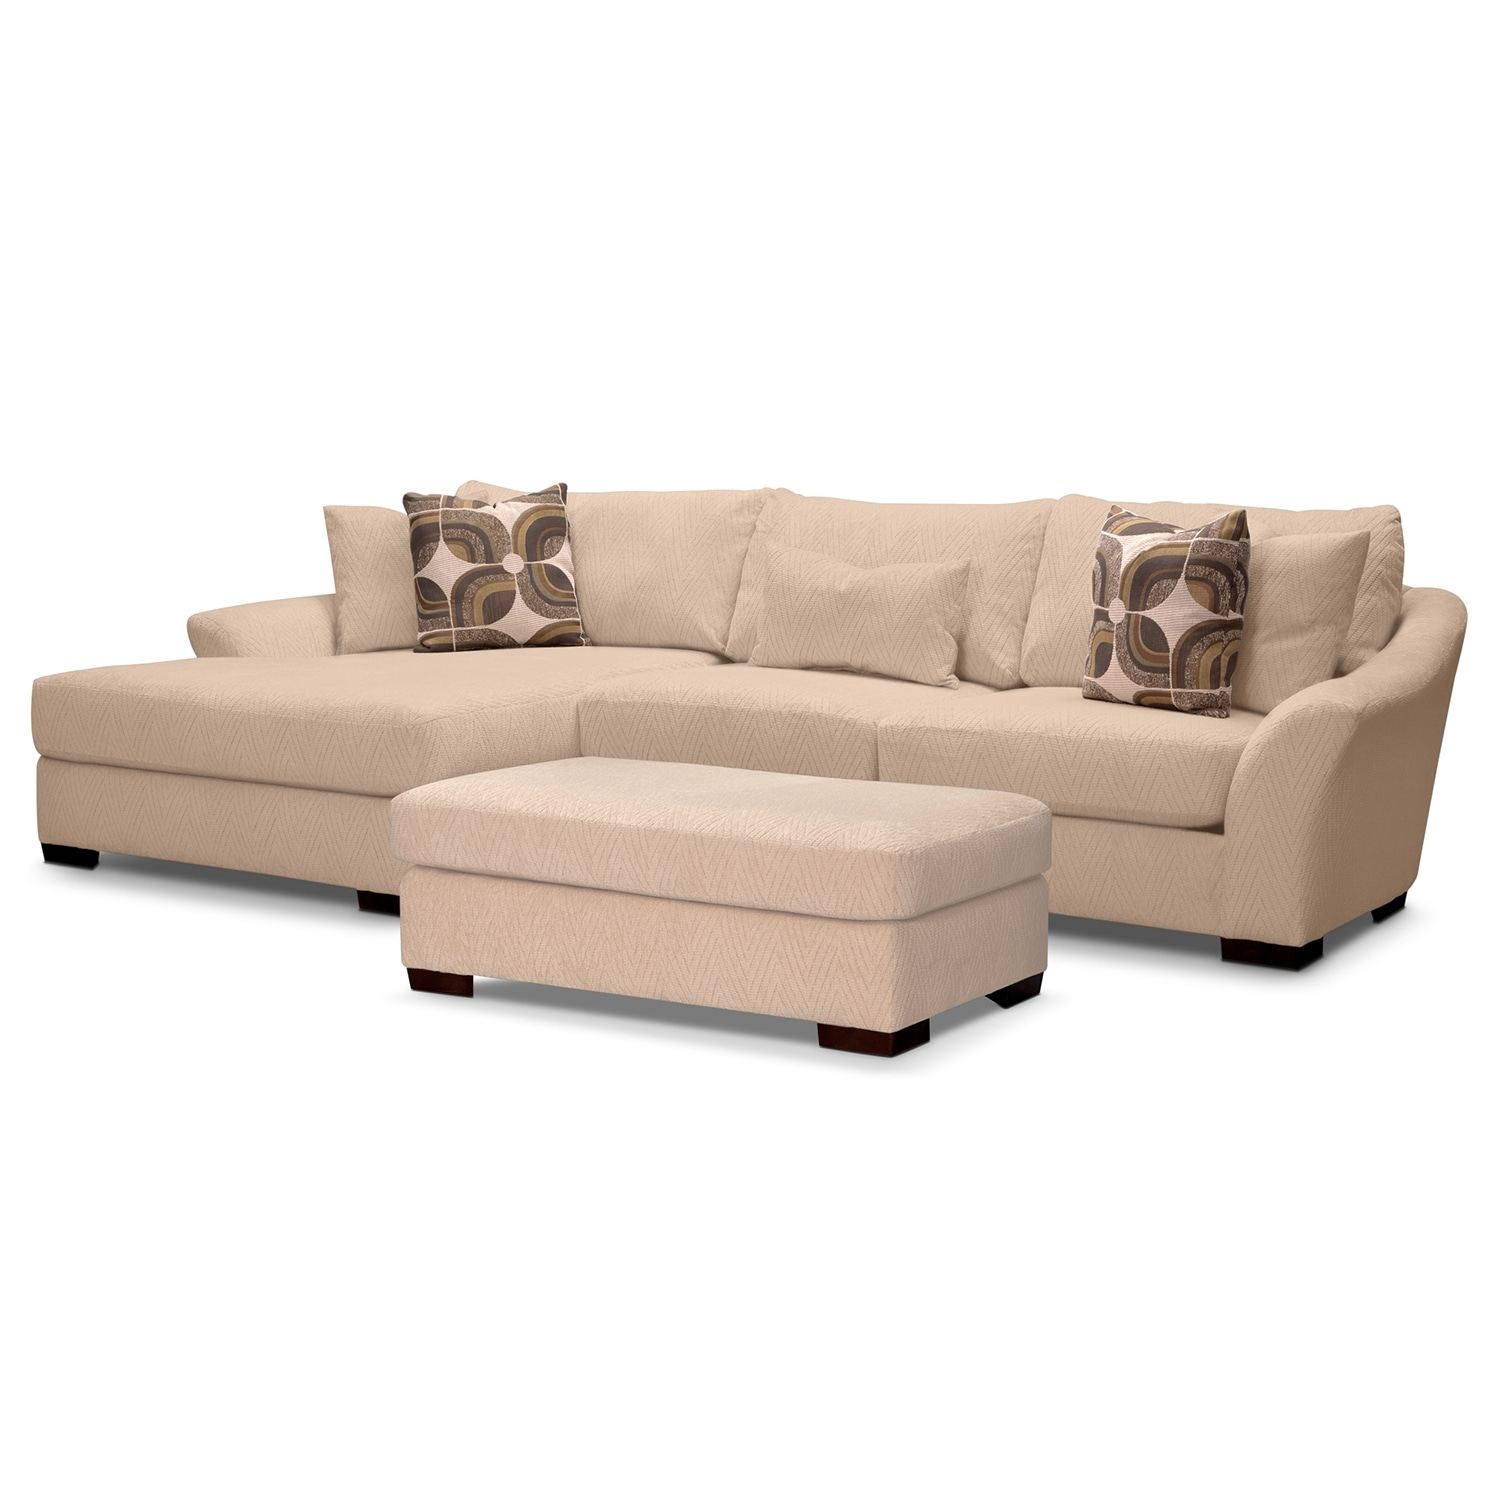 Living Room Furniture - Oasis II 2 Pc. Sectional and Ottoman